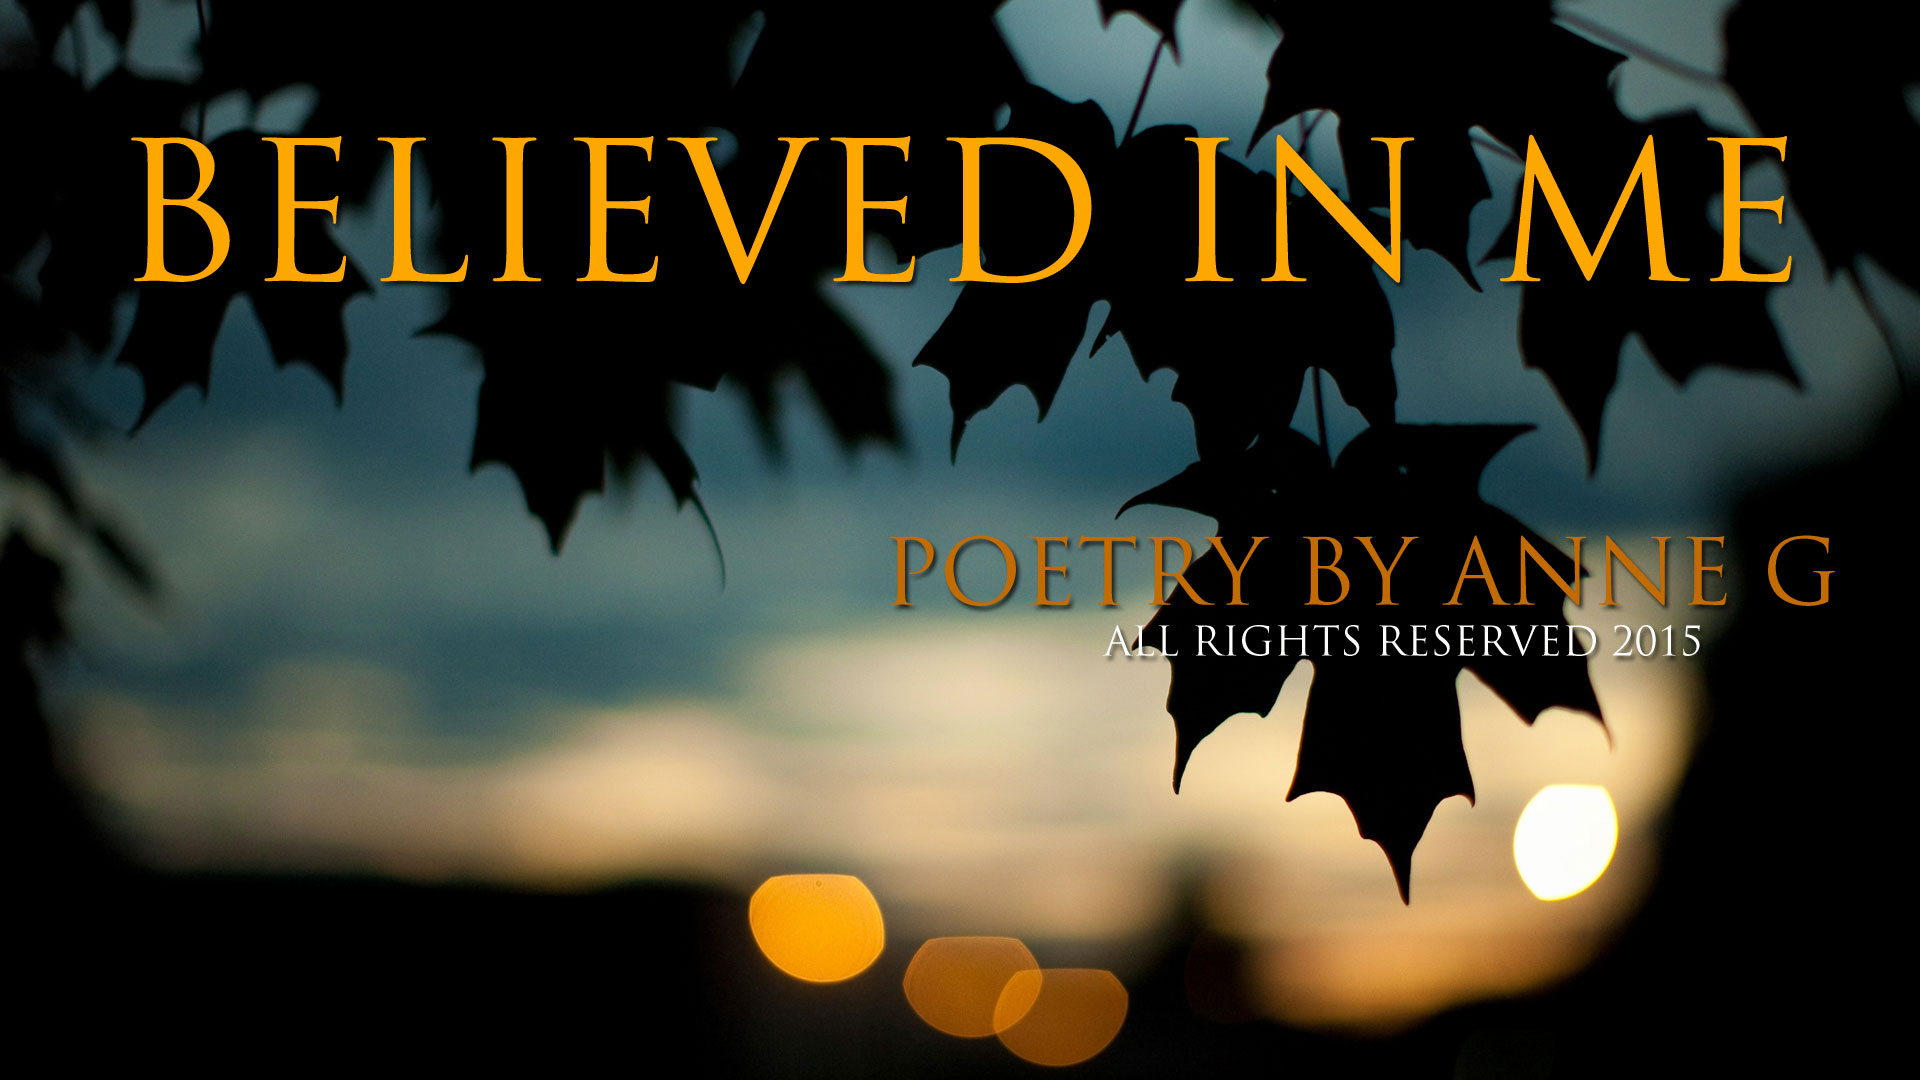 Believed In Me poetry at spillwords.com by Anne G